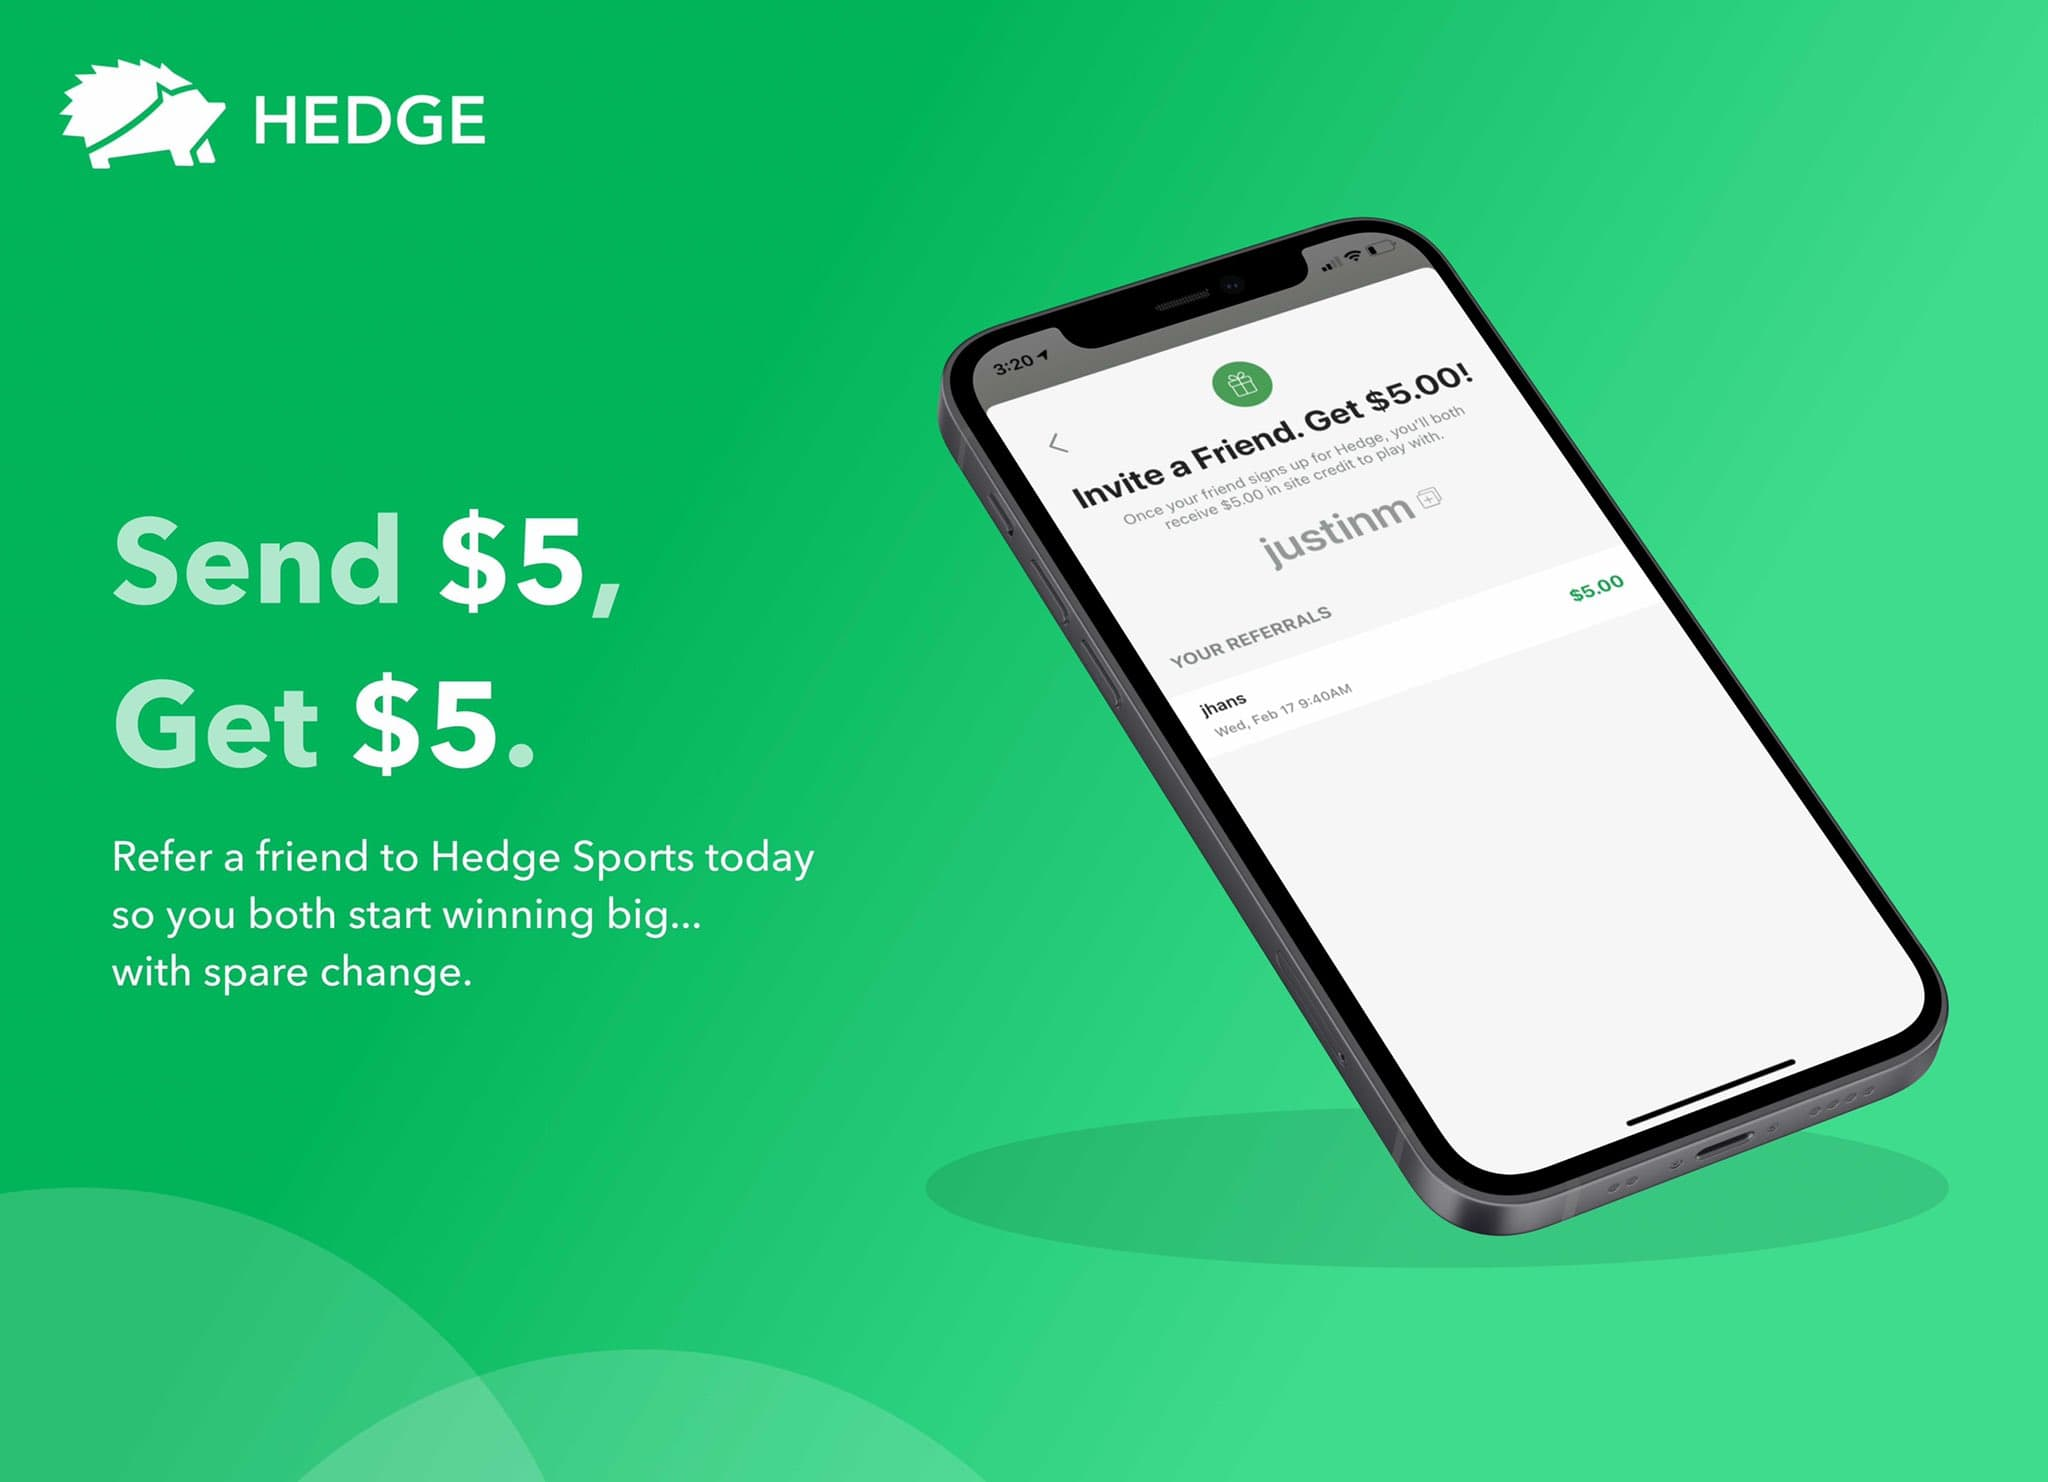 Hedge is a Daily Fantasy Sports mobile application that connects your spare change round-ups (similar to Acorns) to different Fantasy Sports Contests.